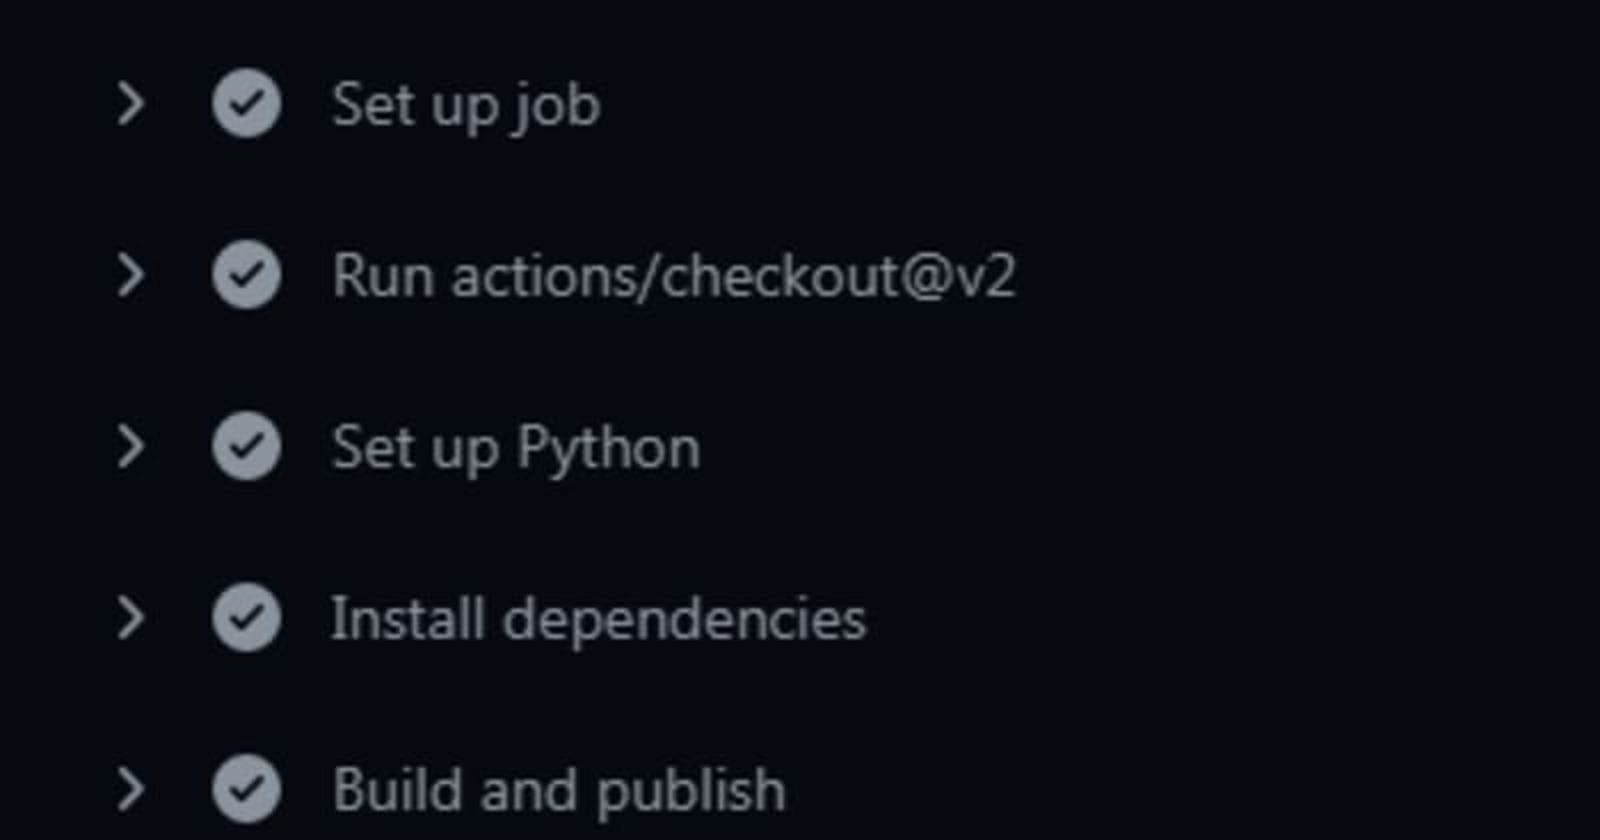 Automate Build and deploy of Python Package using Github actions.